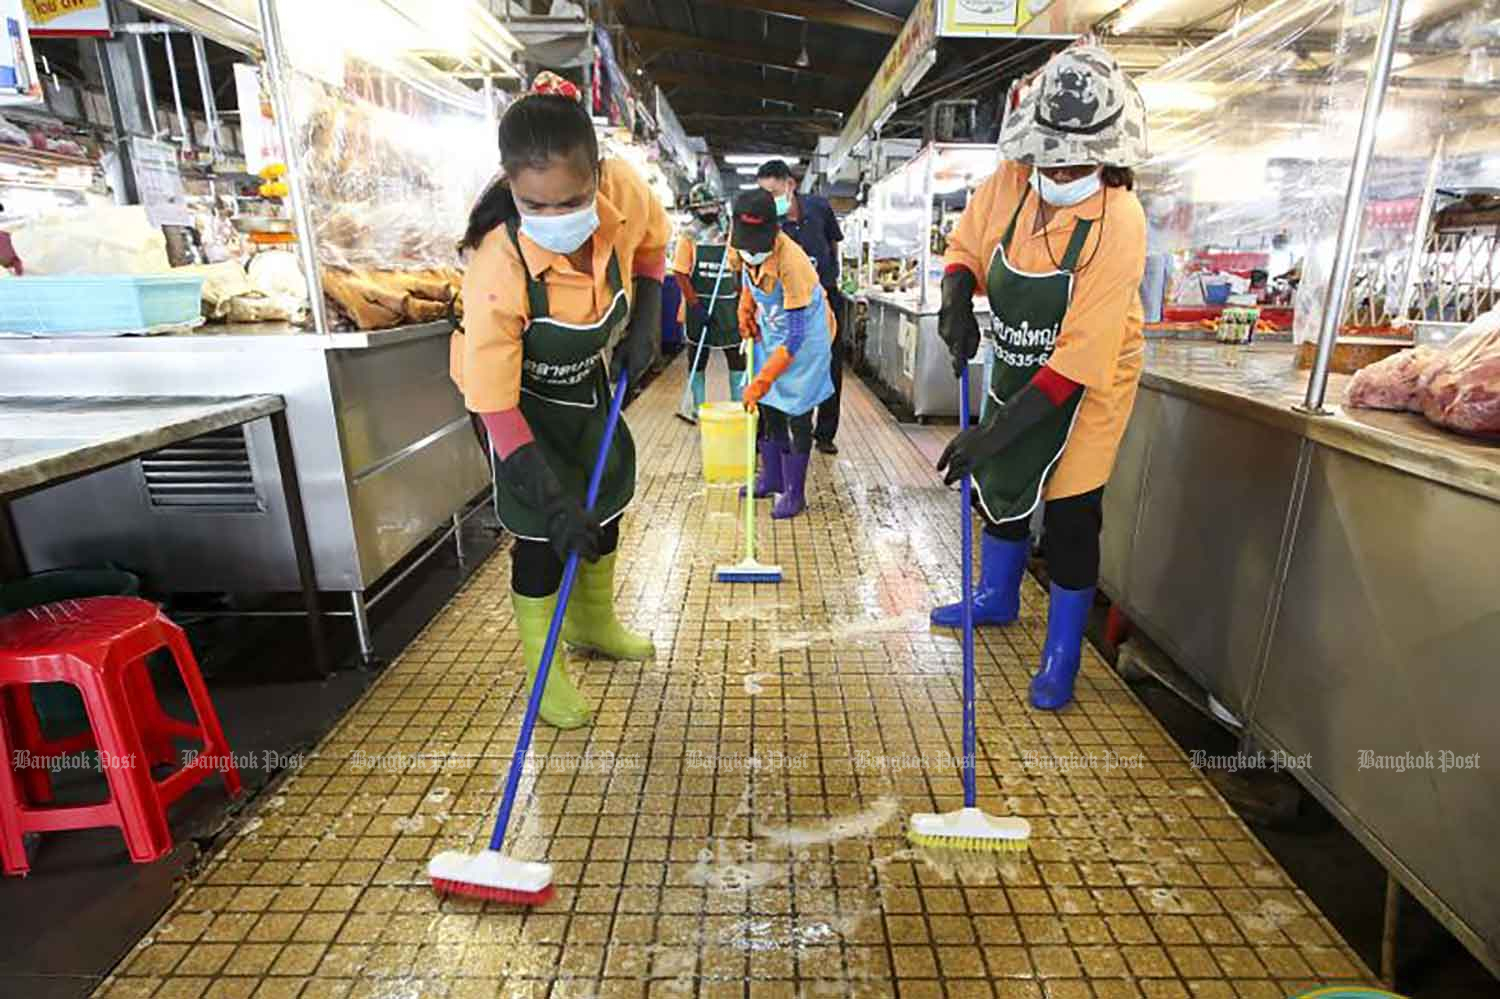 Workers clean the floor of Bang Yai market in Bang Yai district, Nonthaburi, in a bid to control the spread of Covid-19 on Tuesday when 95 new Covid-19 cases were reported in the country. (Photo by Pattarapong Chatpattarasill)